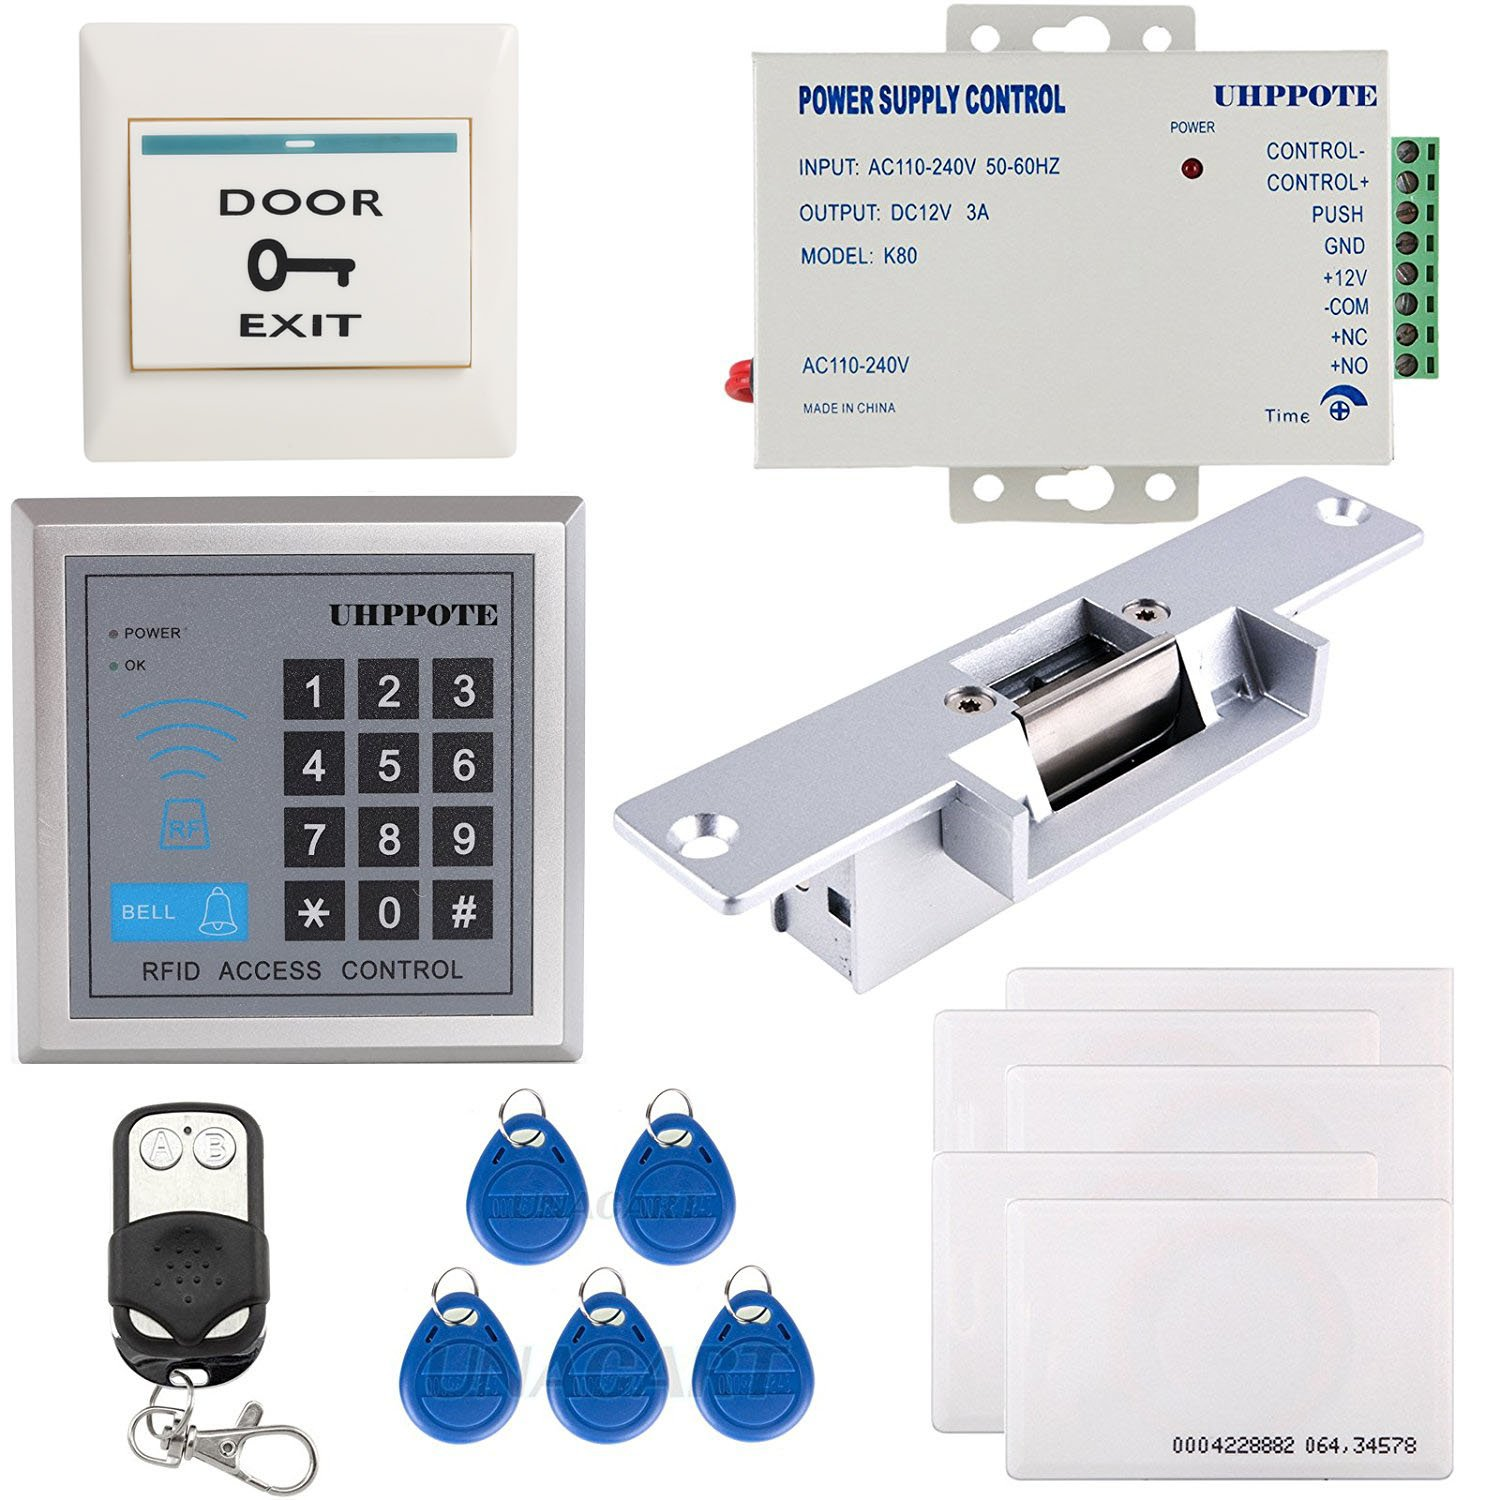 UHPPOTE Full Complete 125KHz EM-ID Card Single Door Access Control Keypad System Kit With Electric Strike Lock Remote Control by UHPPOTE